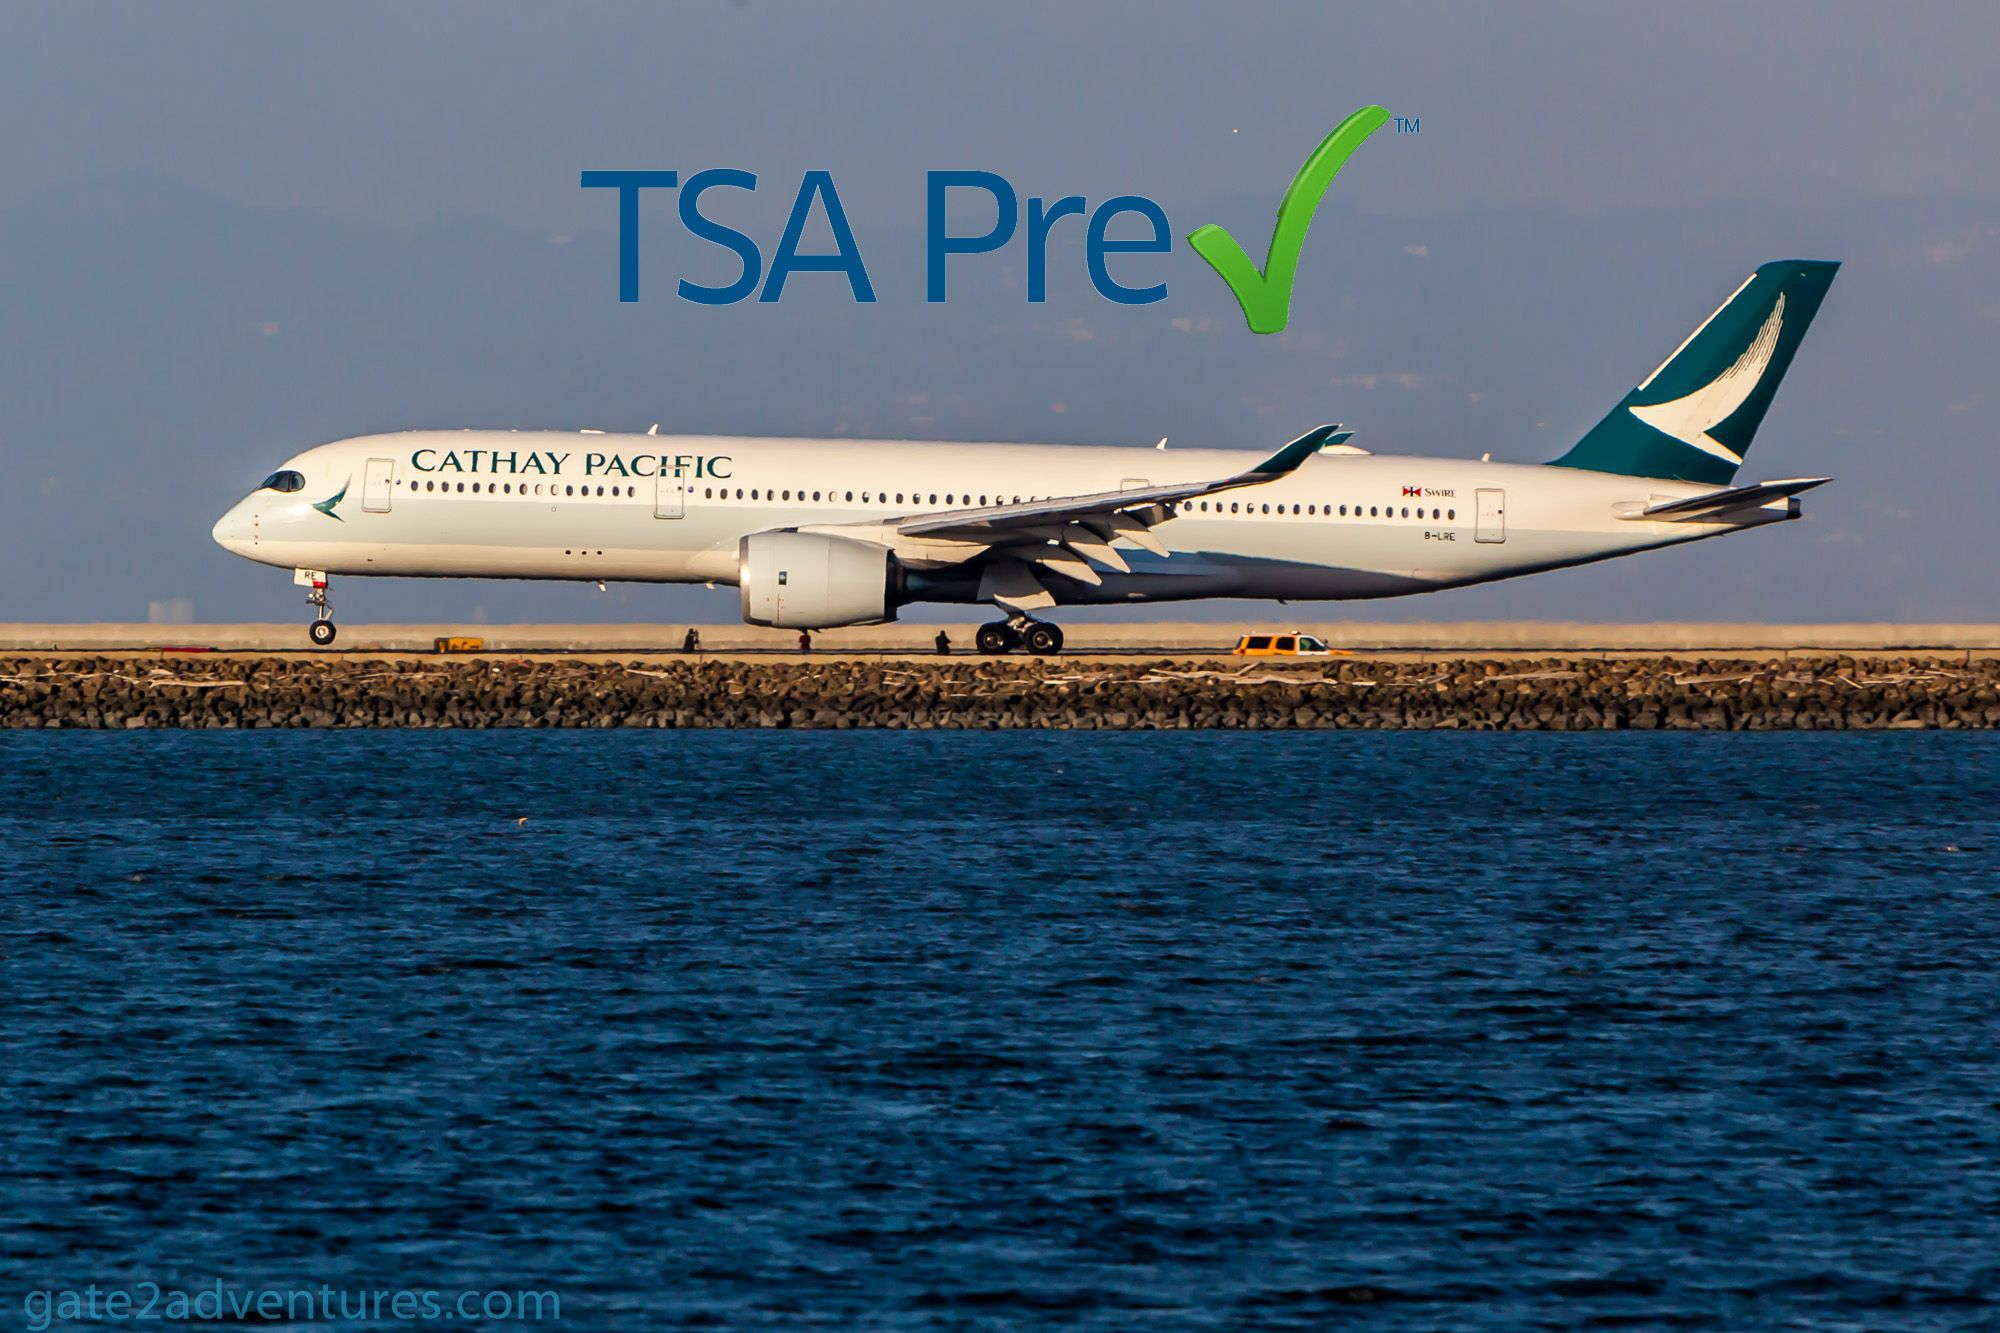 Travel Tip of the Week: Make Sure You Add Your Known Traveler Number (KTN) to Your Reservation for TSA Pre